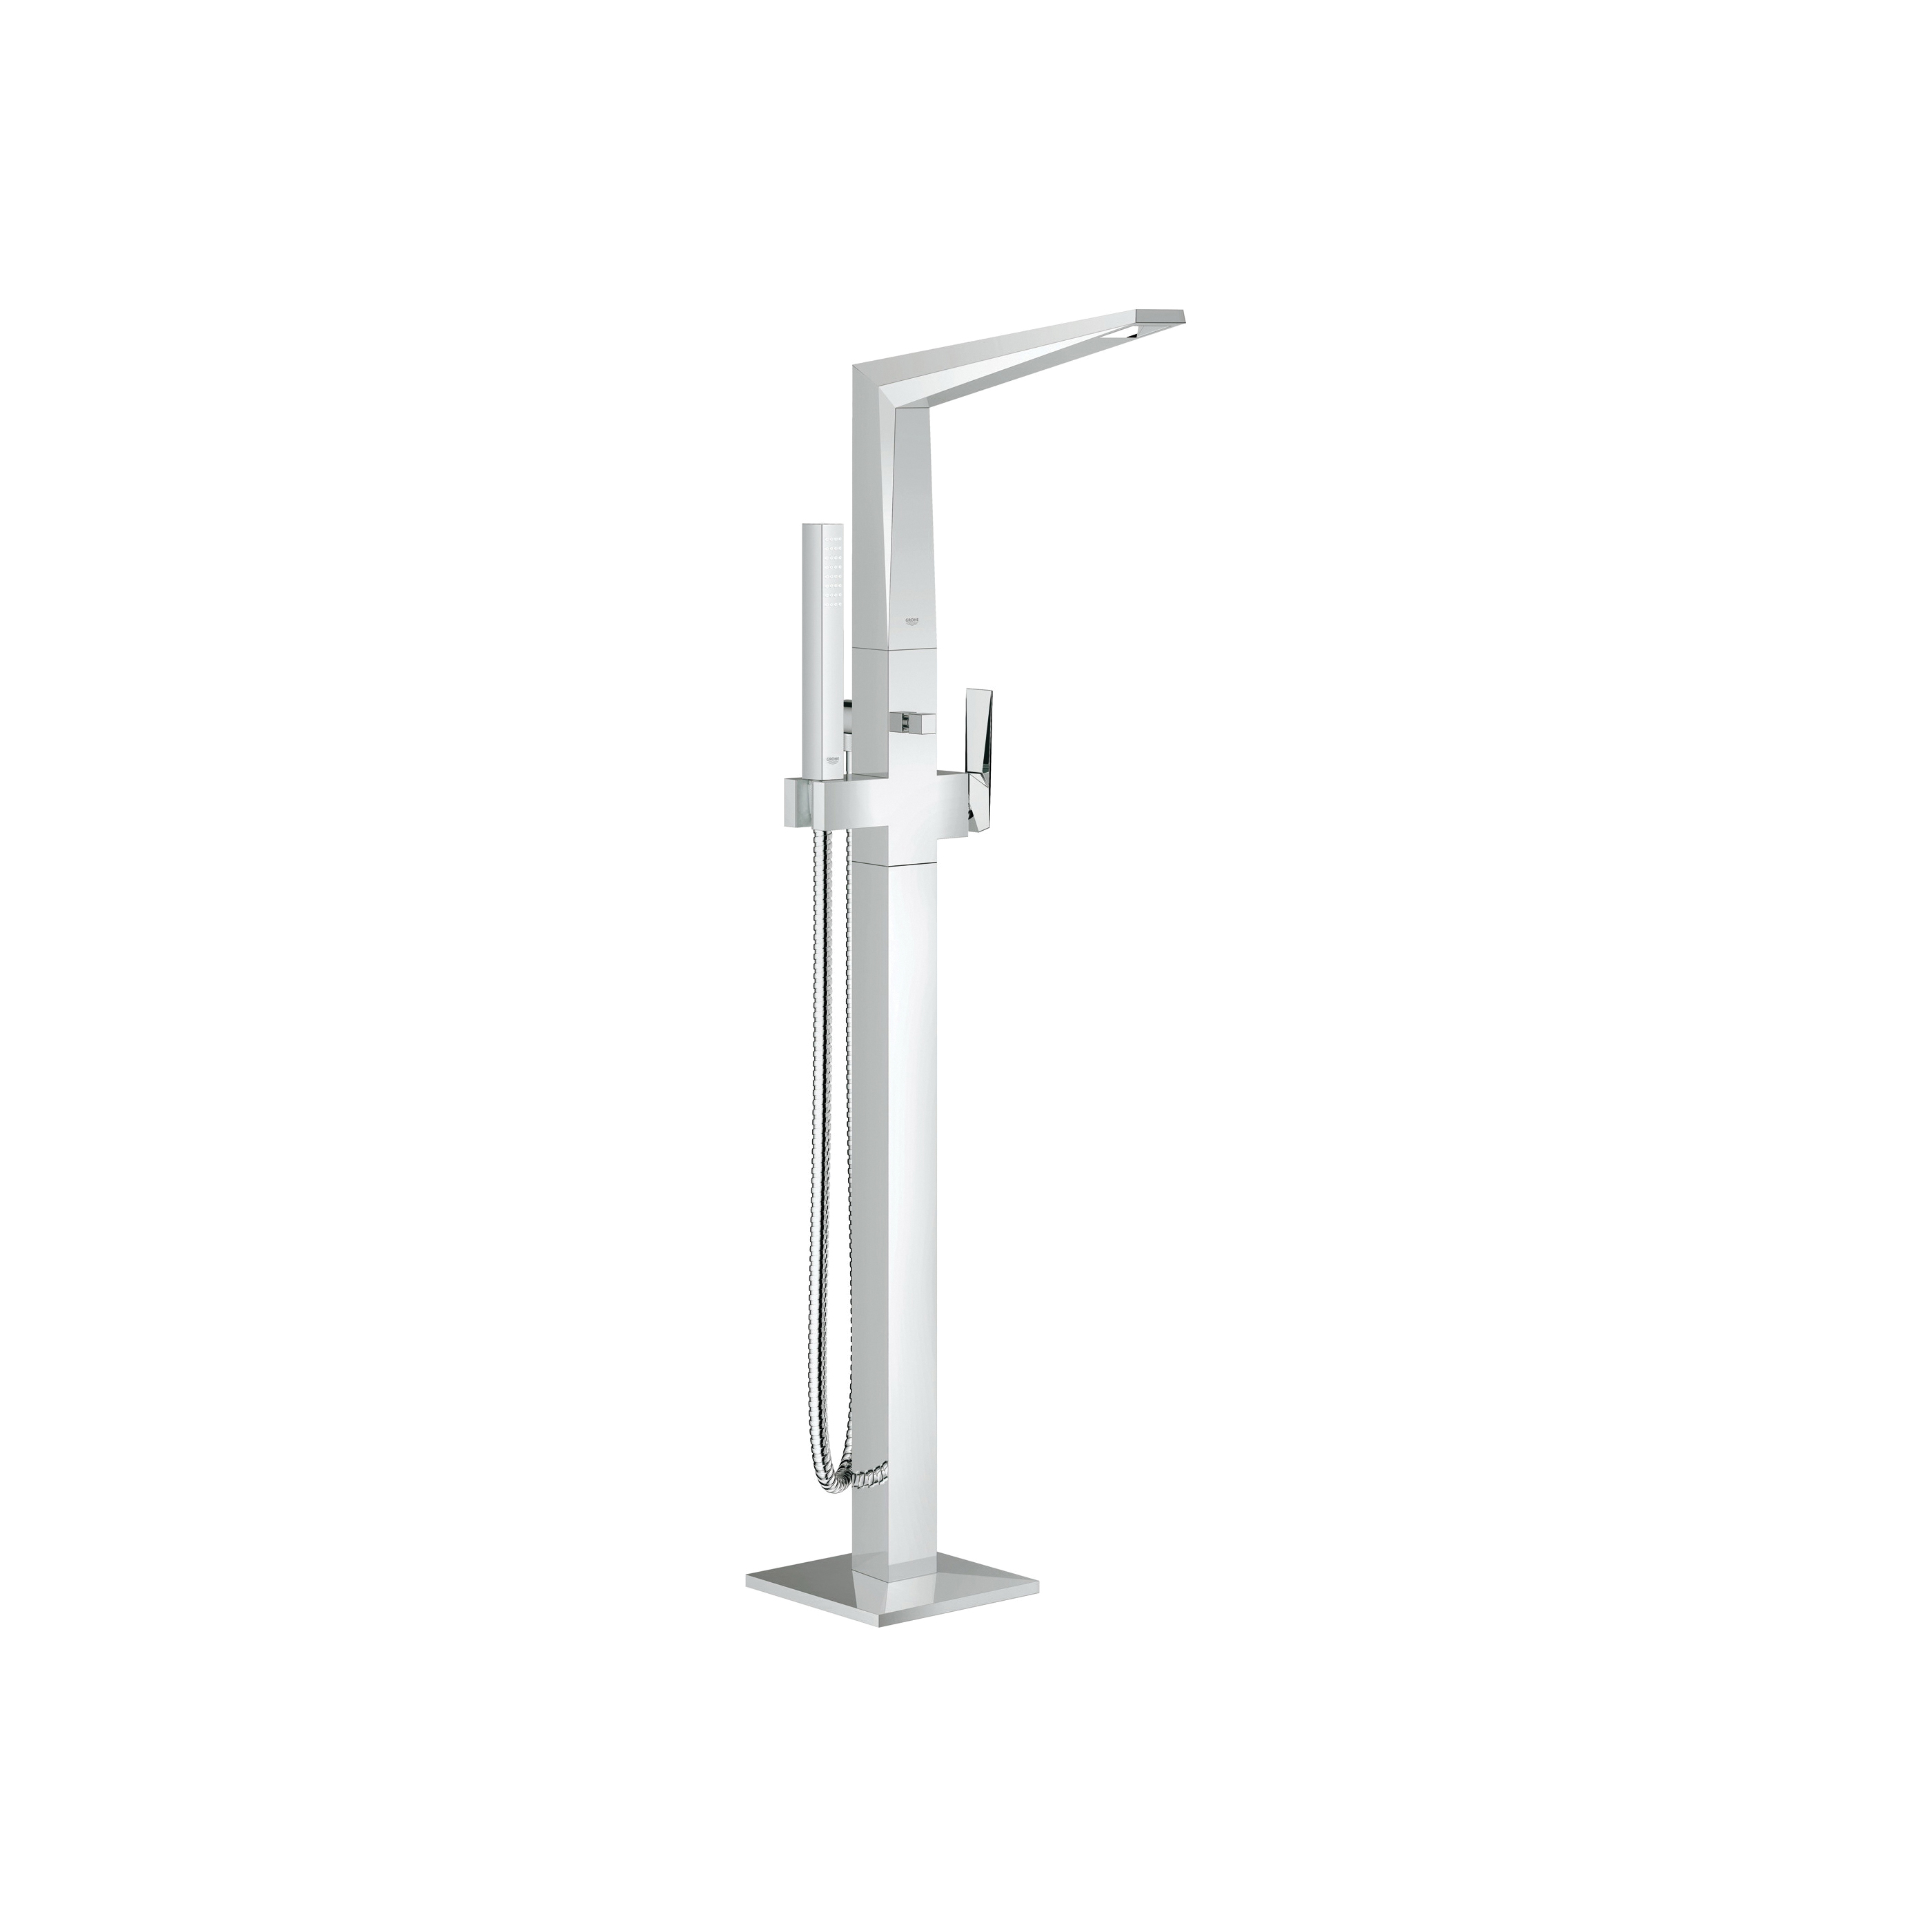 GROHE 23119000 Allure Tub Filler, 2 gpm, StarLight® Chrome Plated, 1 Handles, Hand Shower Yes/No: Yes, Import